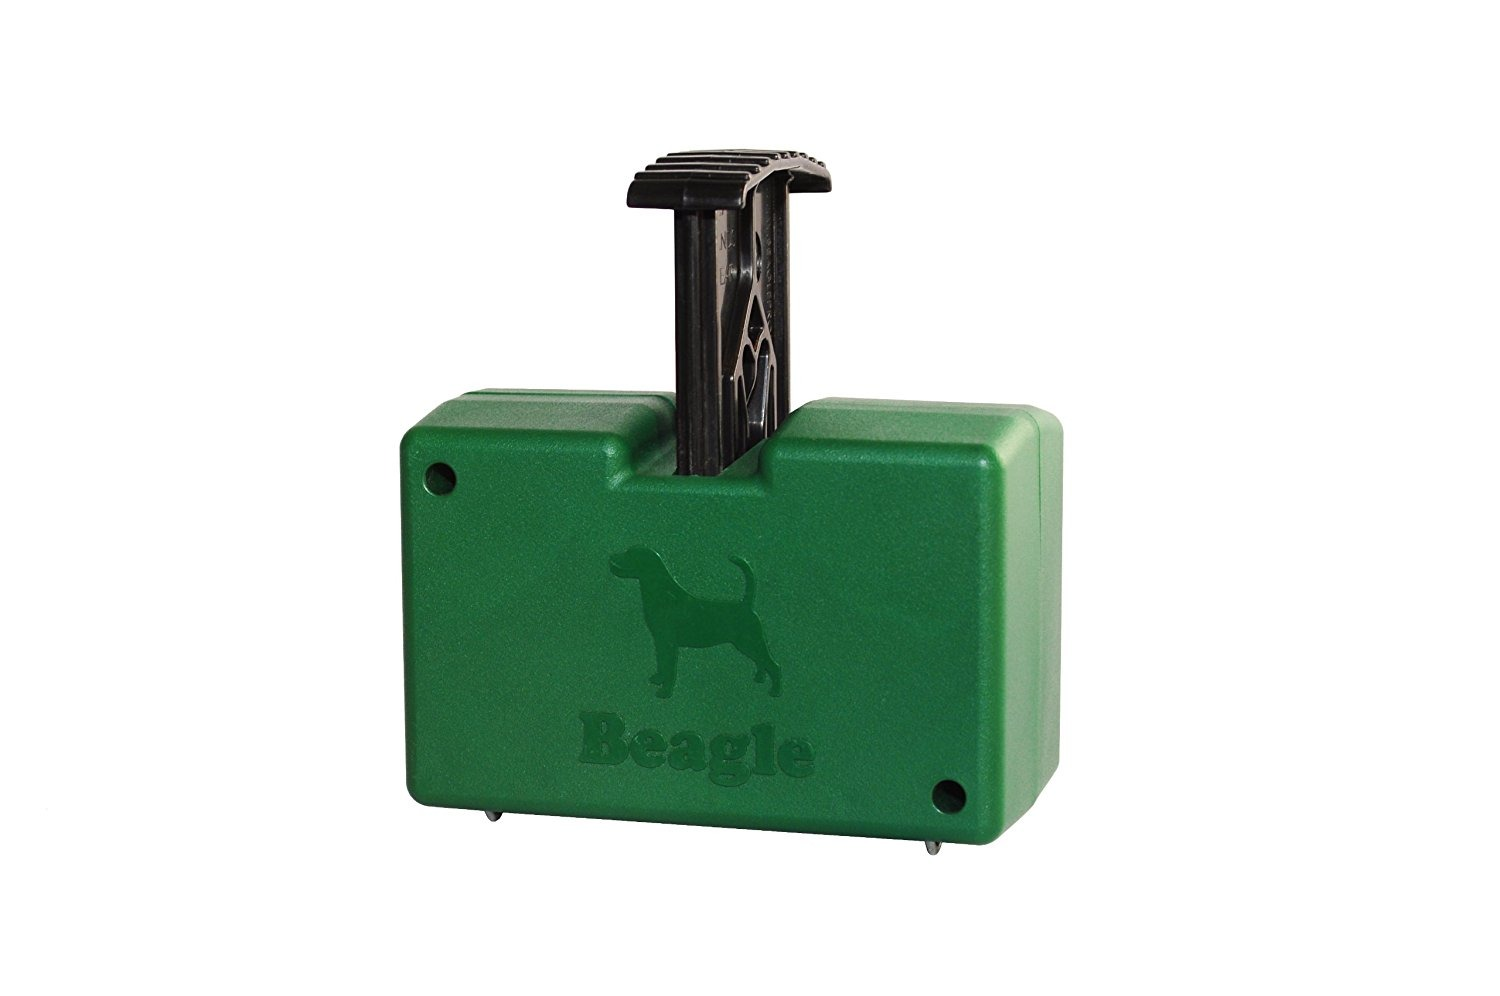 Beagle Garden Products EasySet Mole Trap